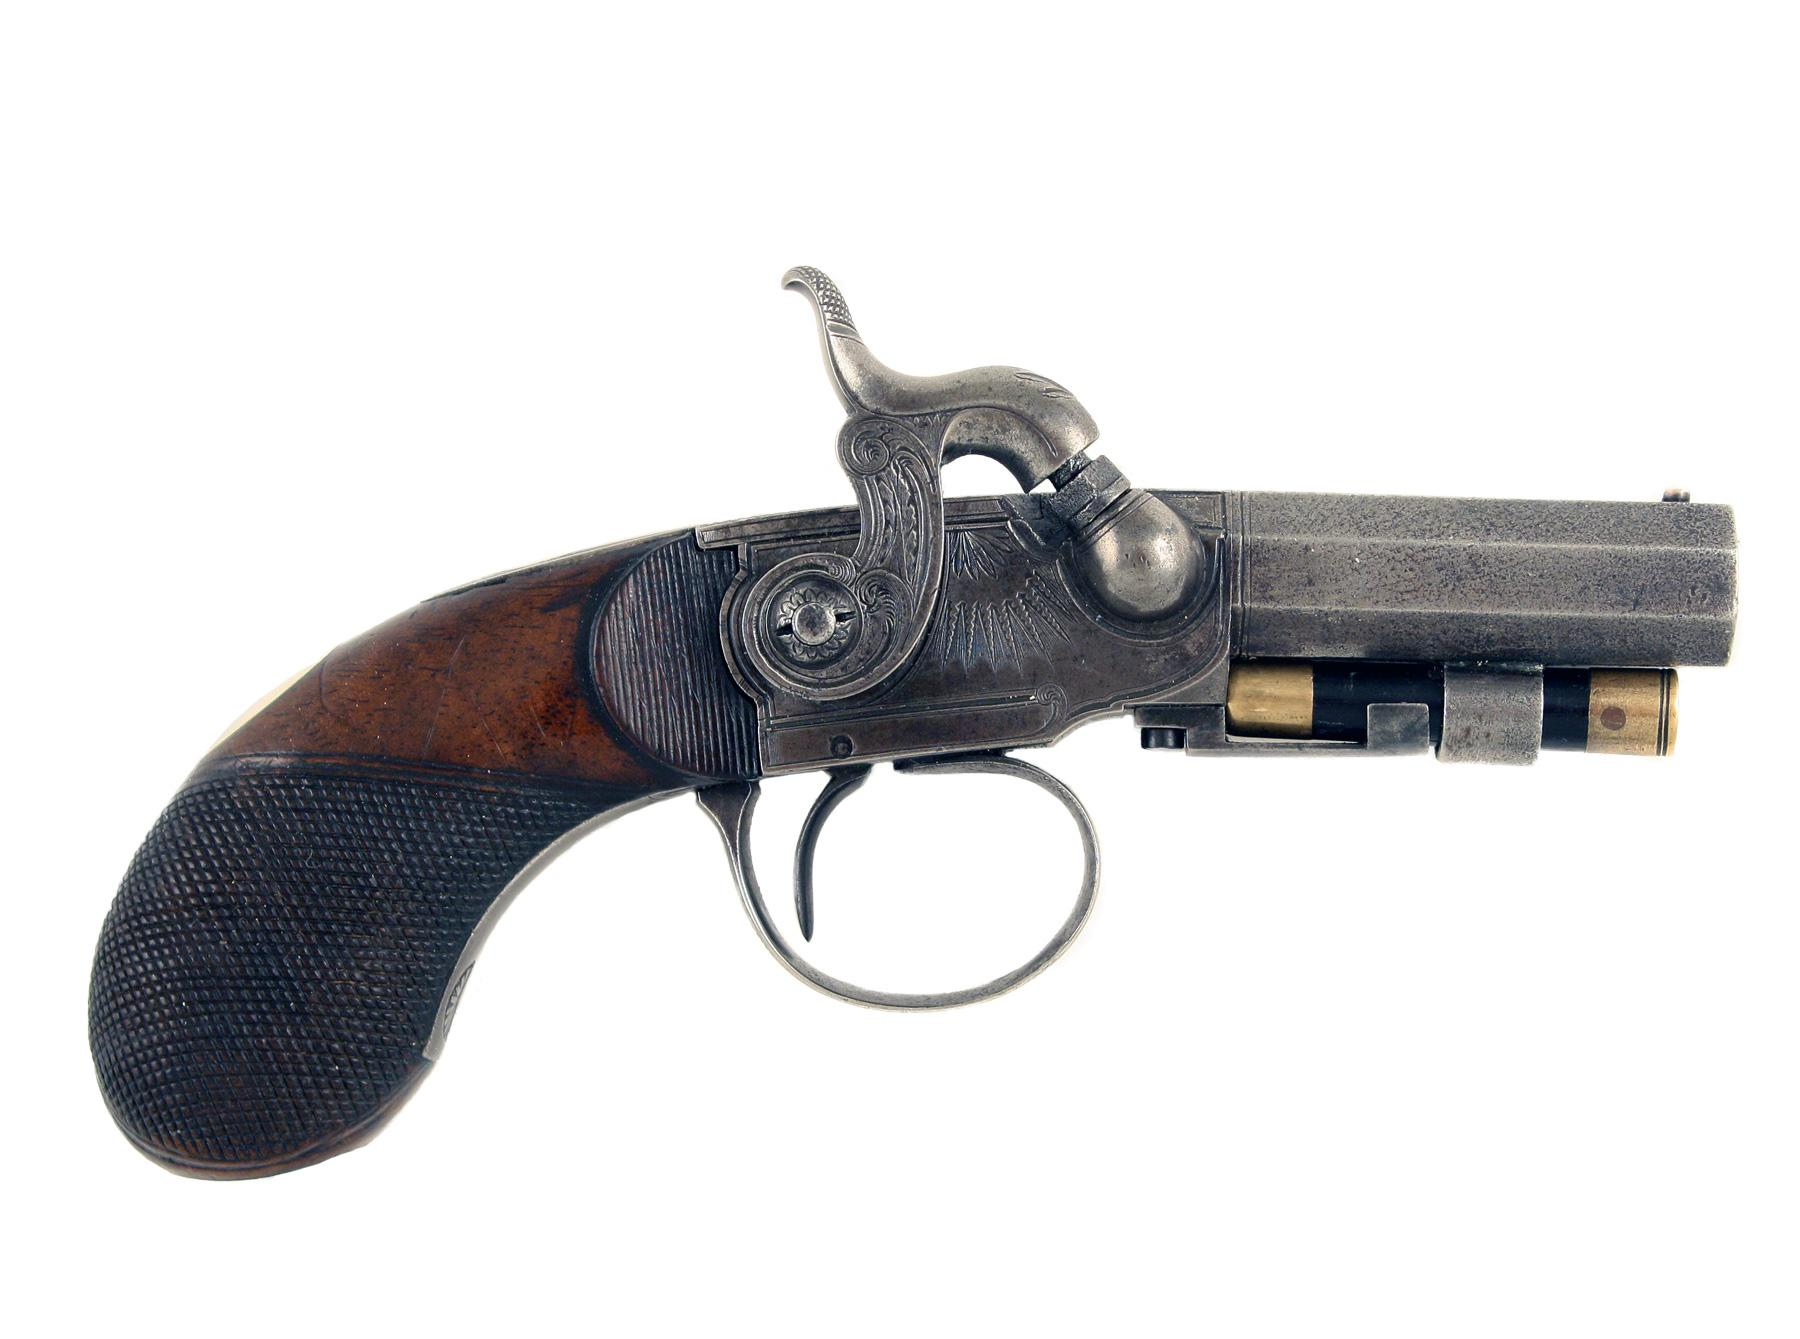 A Scarce Irish Pistol